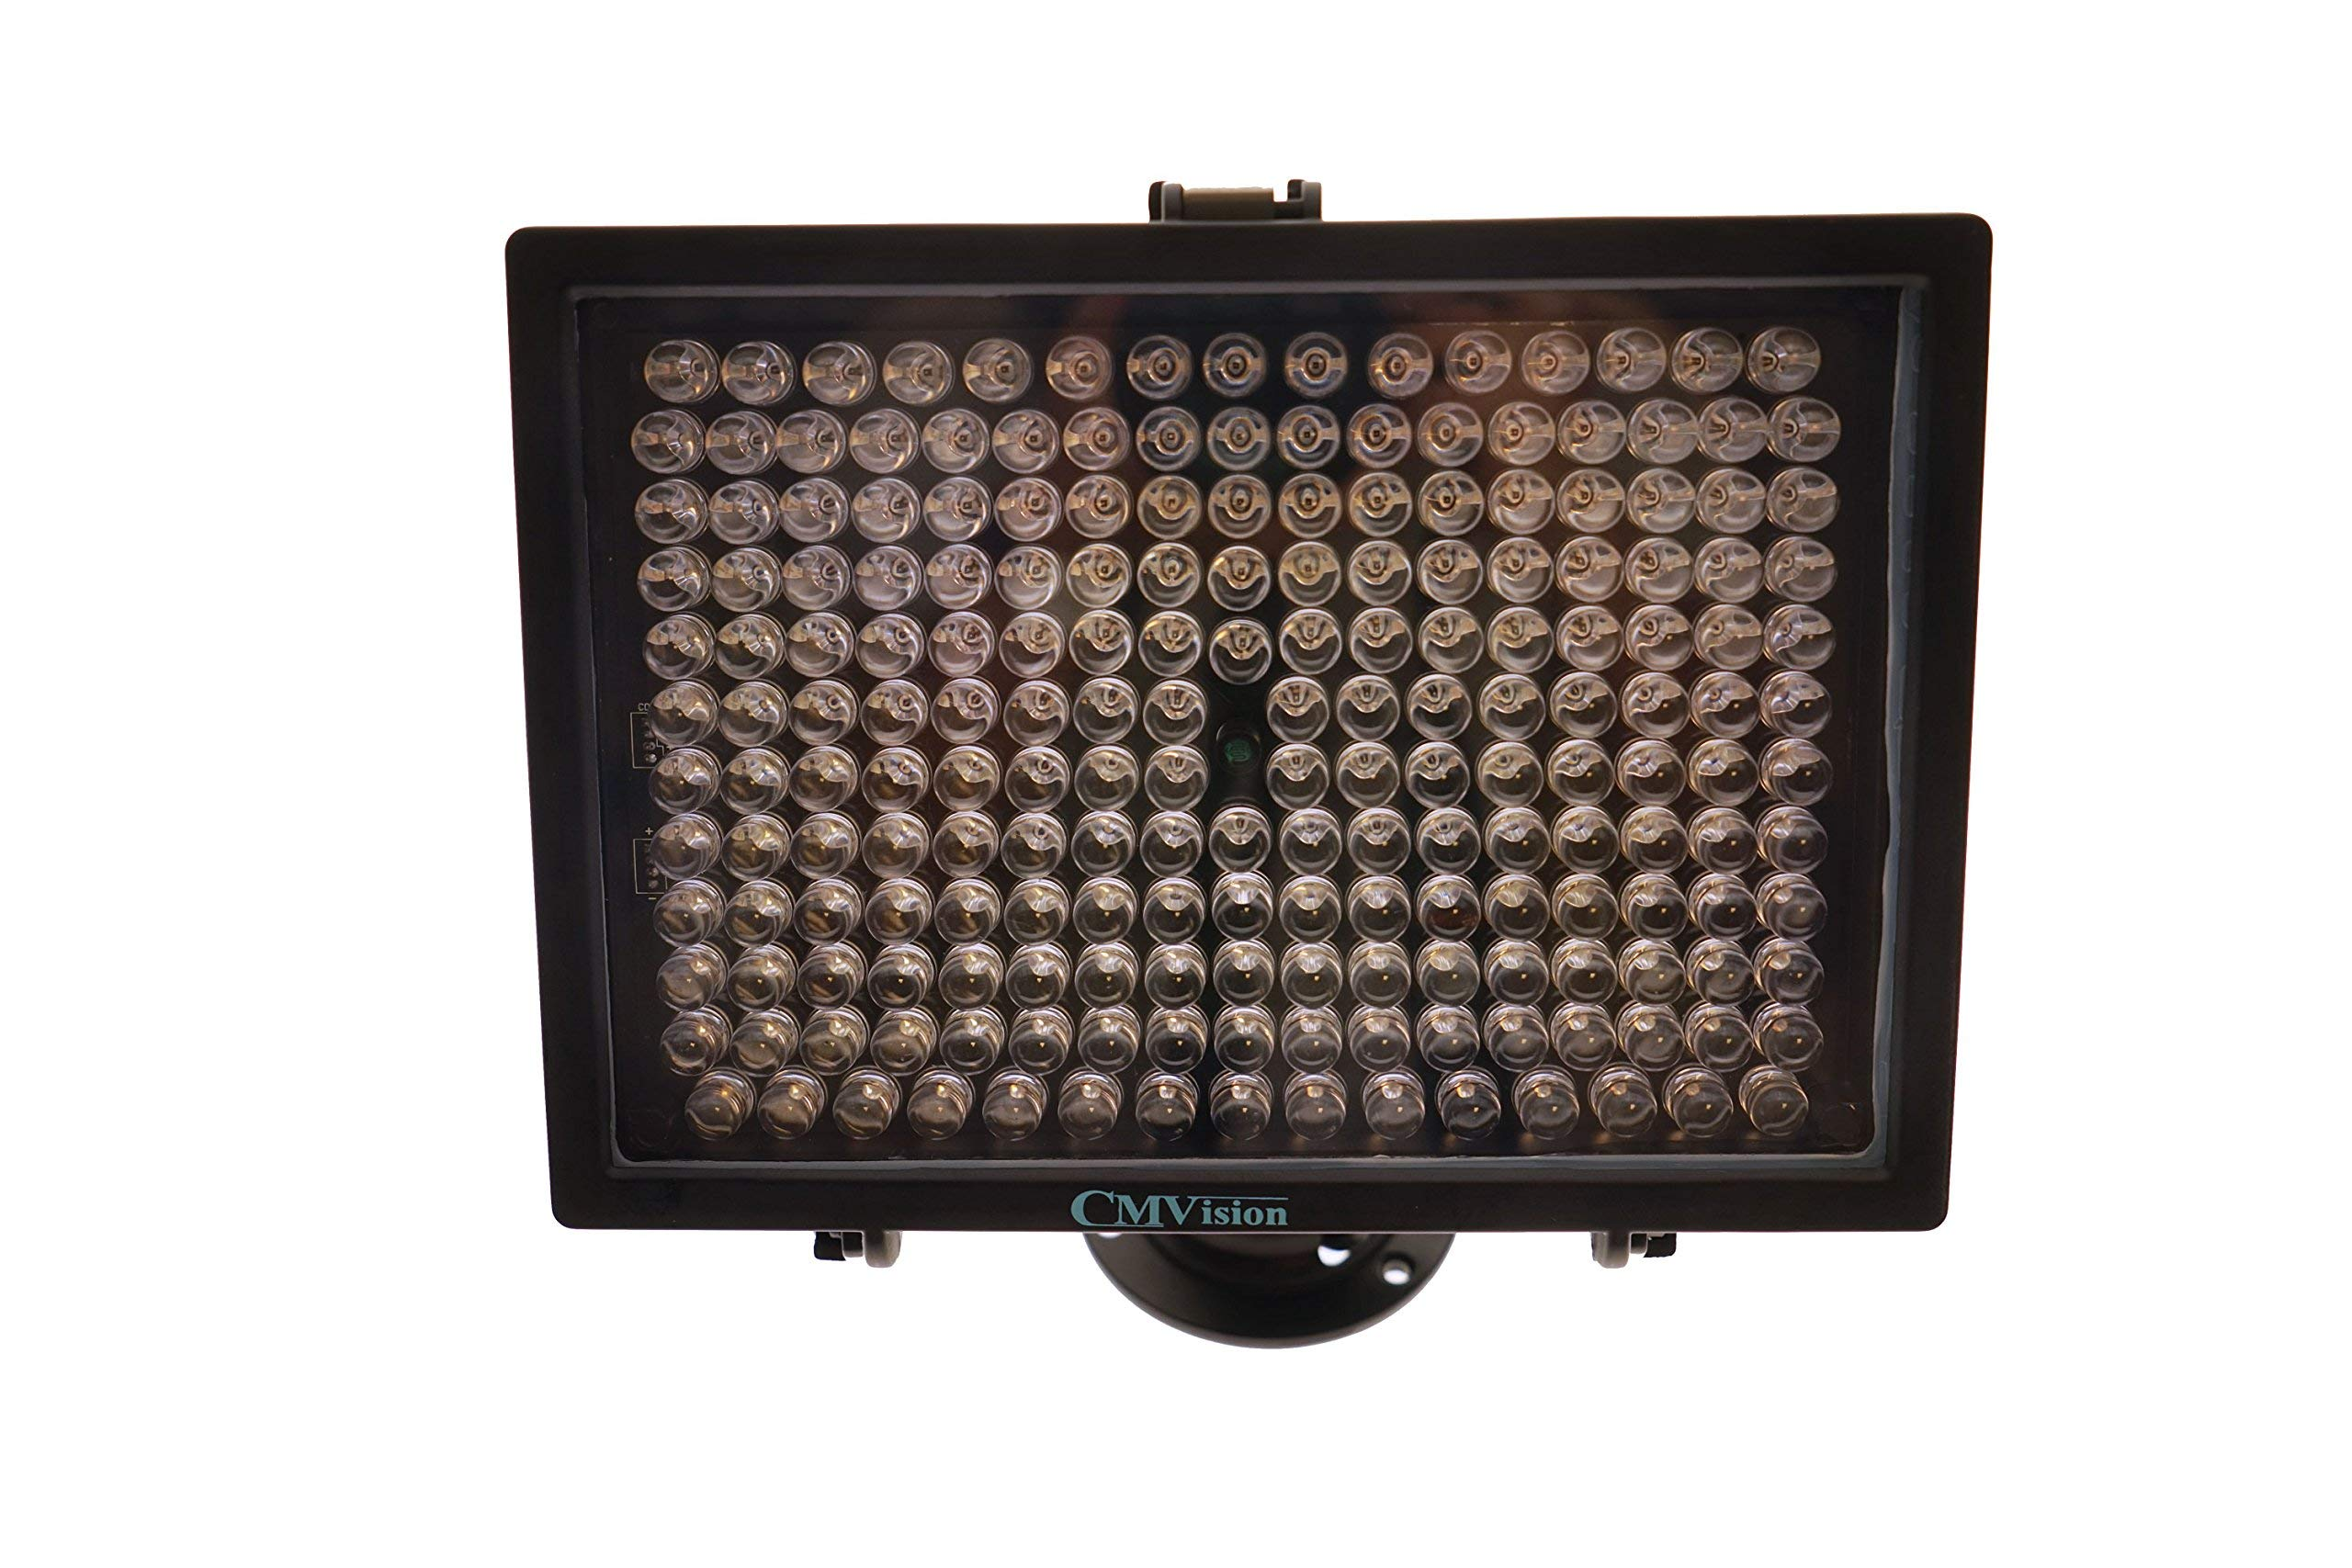 CMVision-IR200-198 (850nm) IR LED Night Indoor/Outdoor Long Range 300ft IR Illuminator w/FREE 12V Power Adapter (Up & Down Position Adjustment only) (Renewed) by CMVision